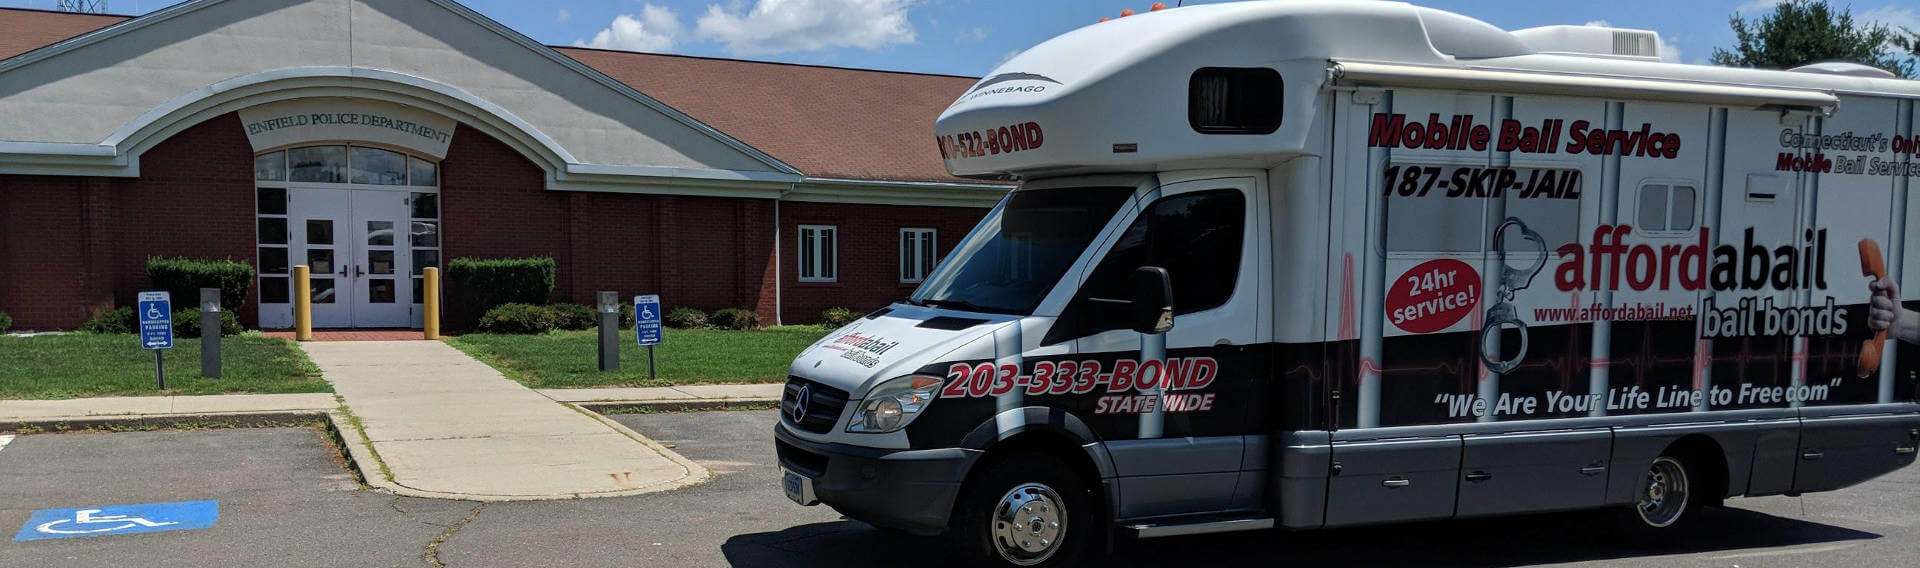 Mobile bail bonds service in Enfield, CT